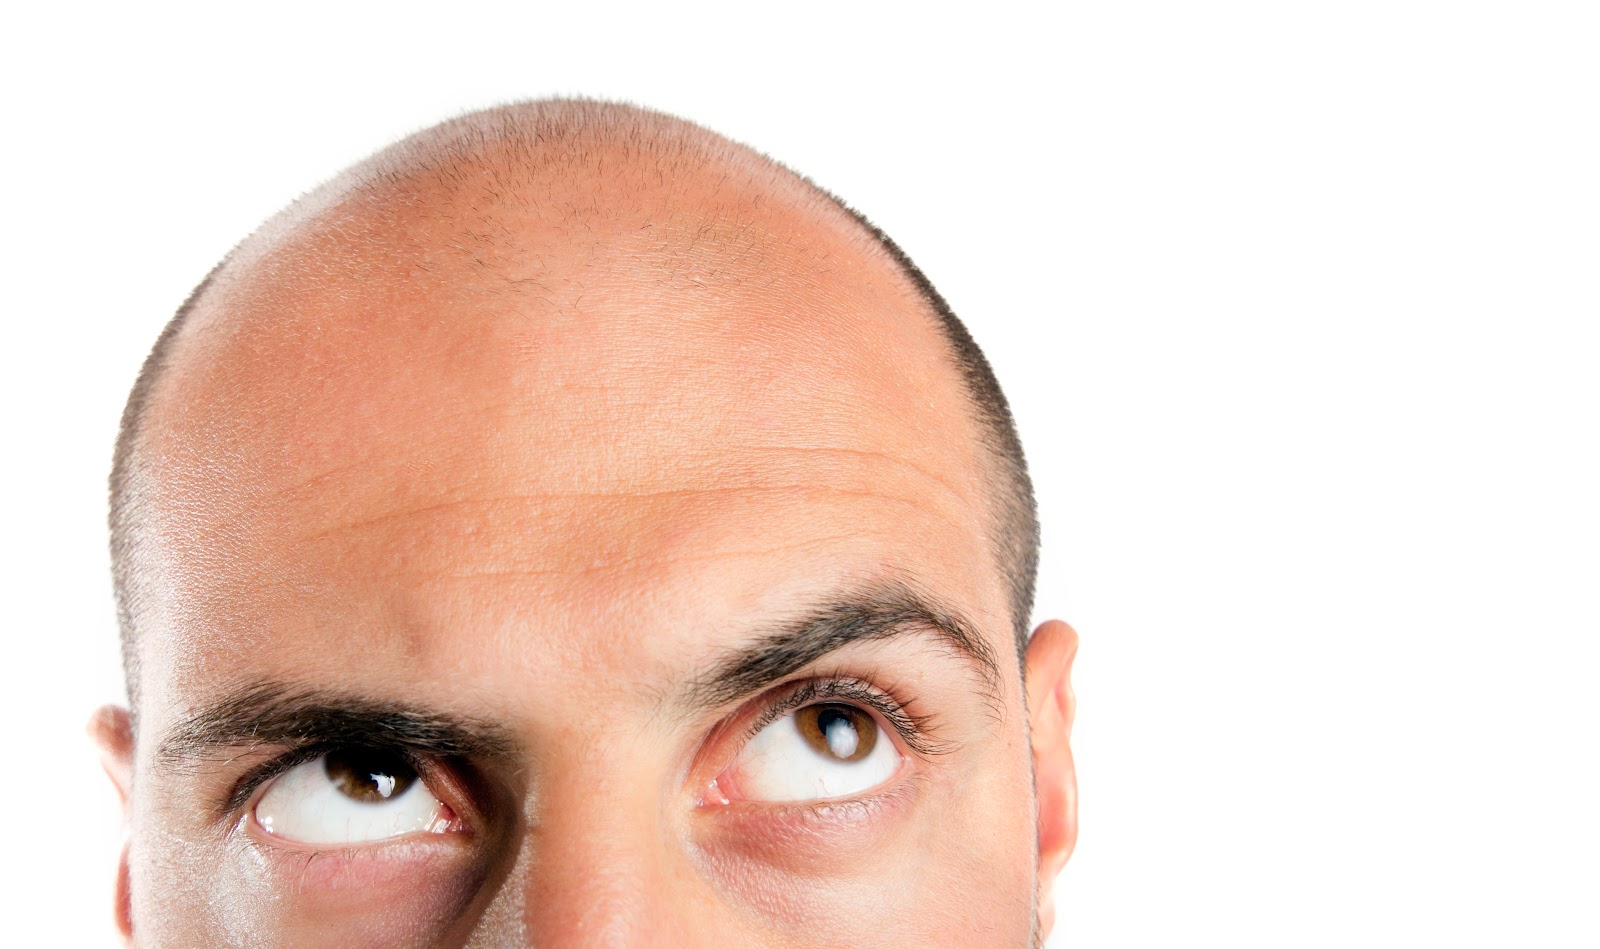 A man looking up at his balding head